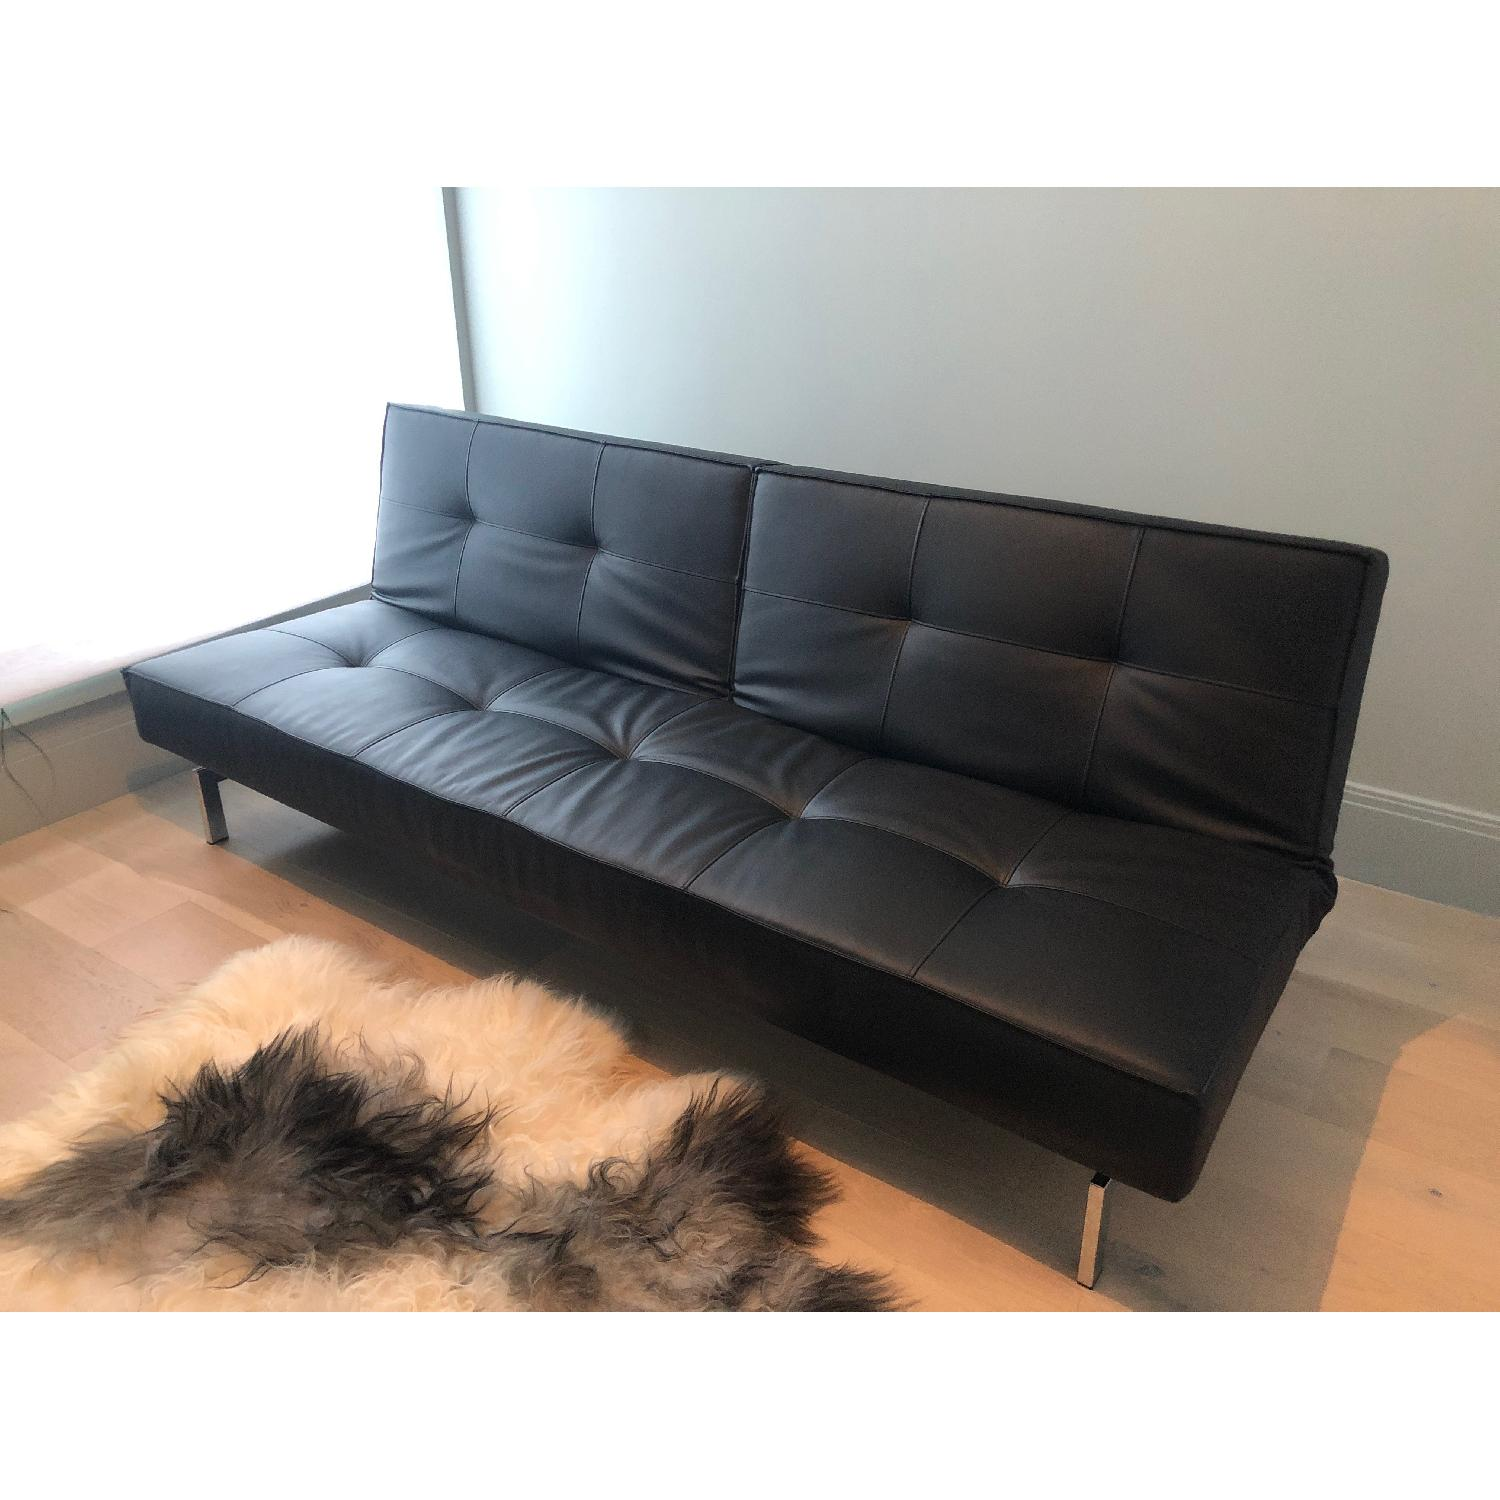 Modern Leather Convertible Sleeper Sofa ...